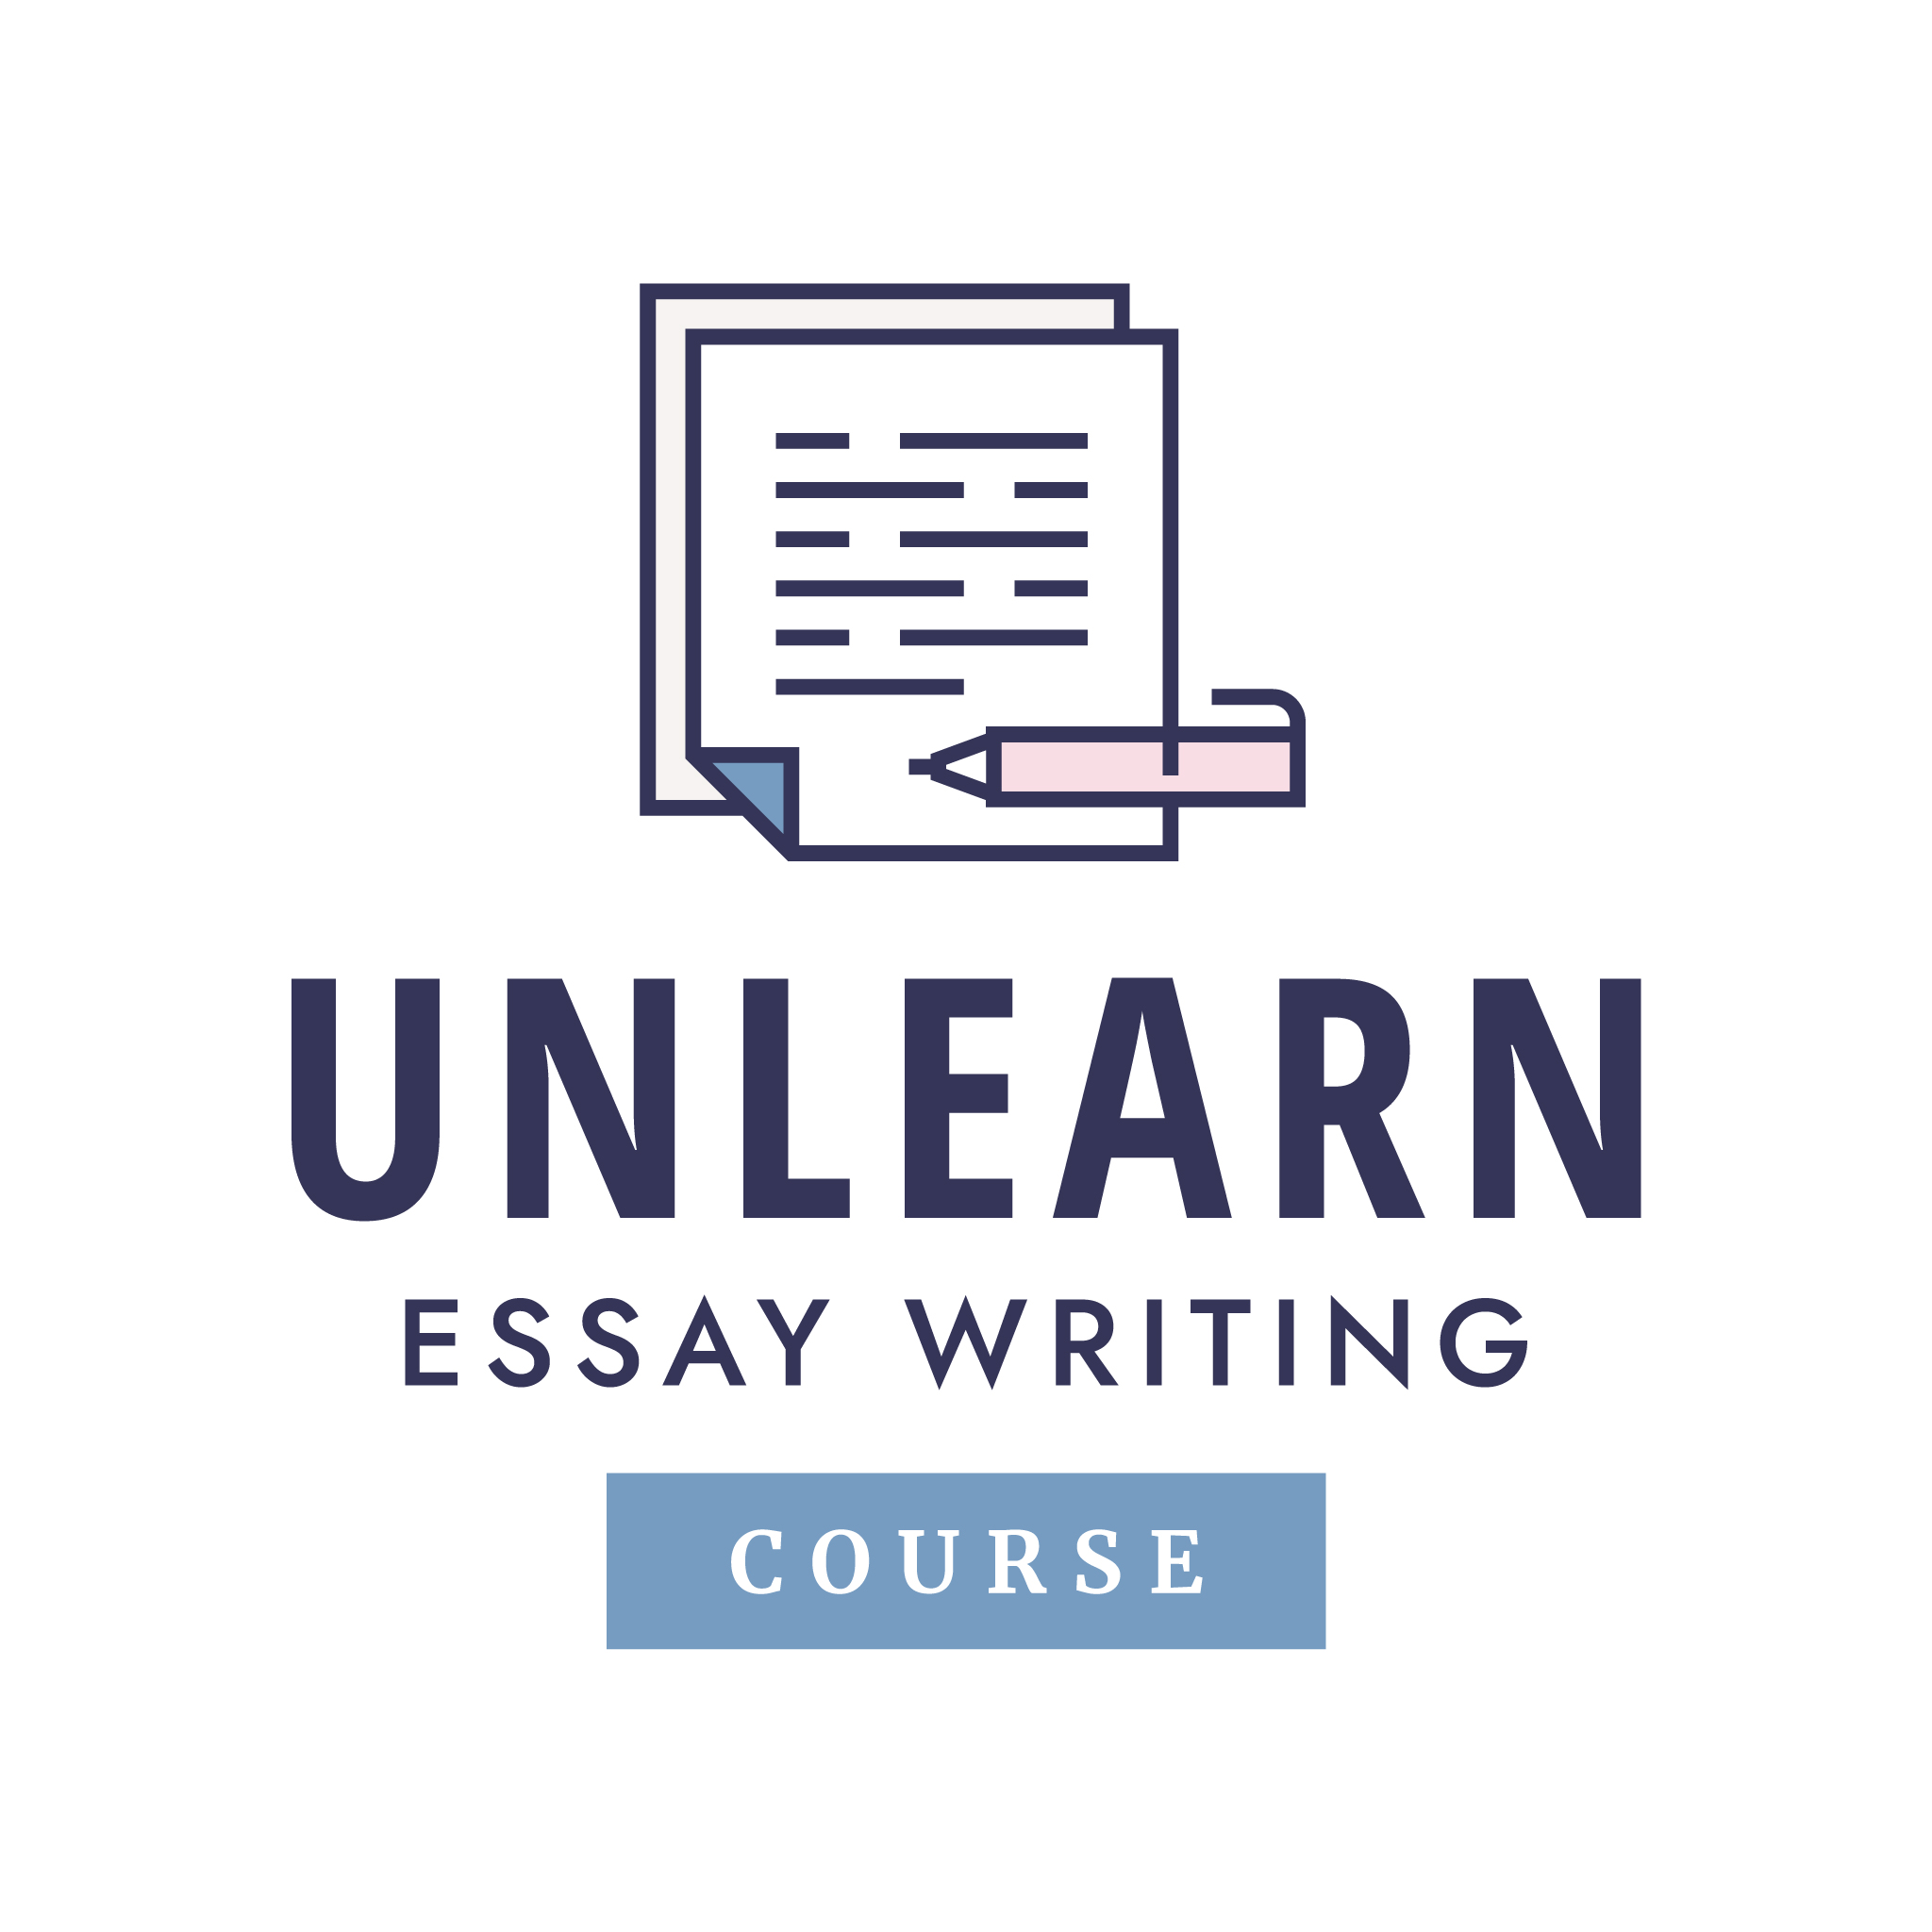 unlearn essay writing course